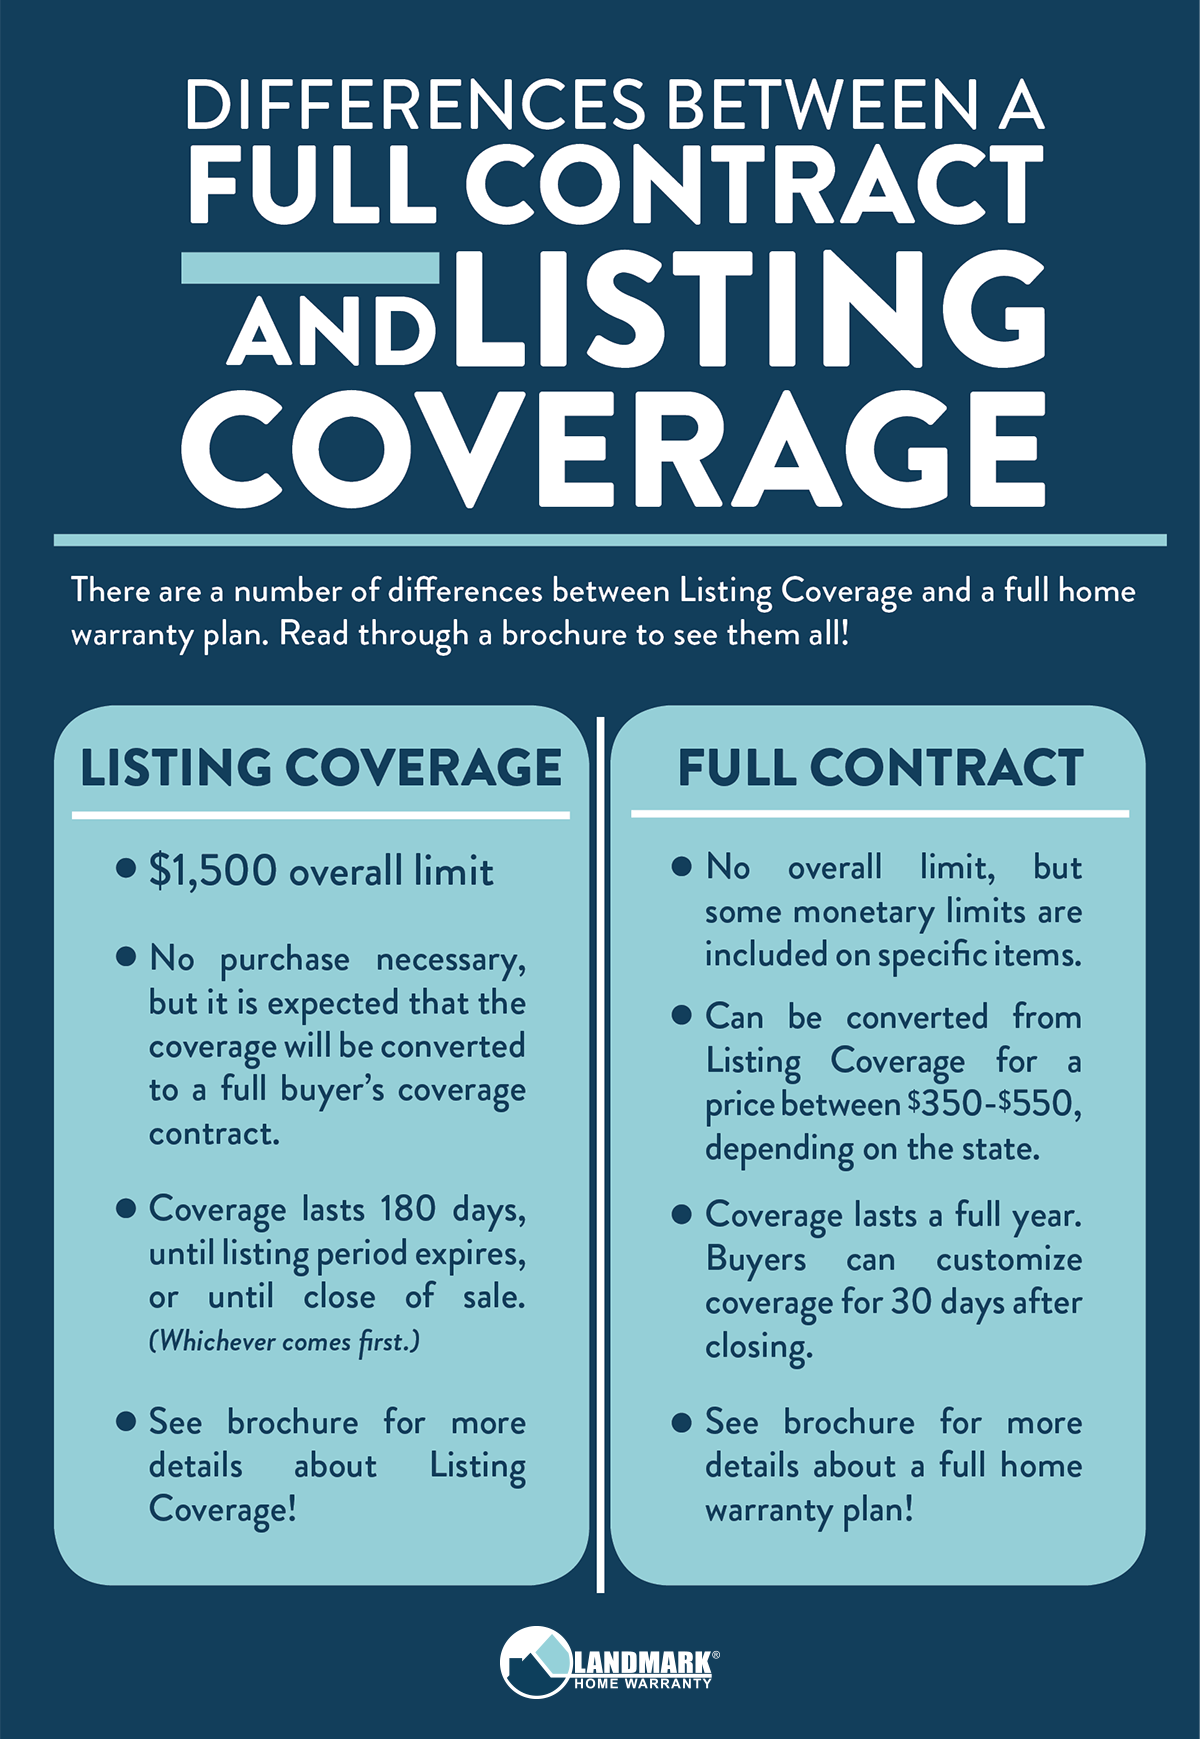 What is the difference between a full home warranty plan and listing coverage?